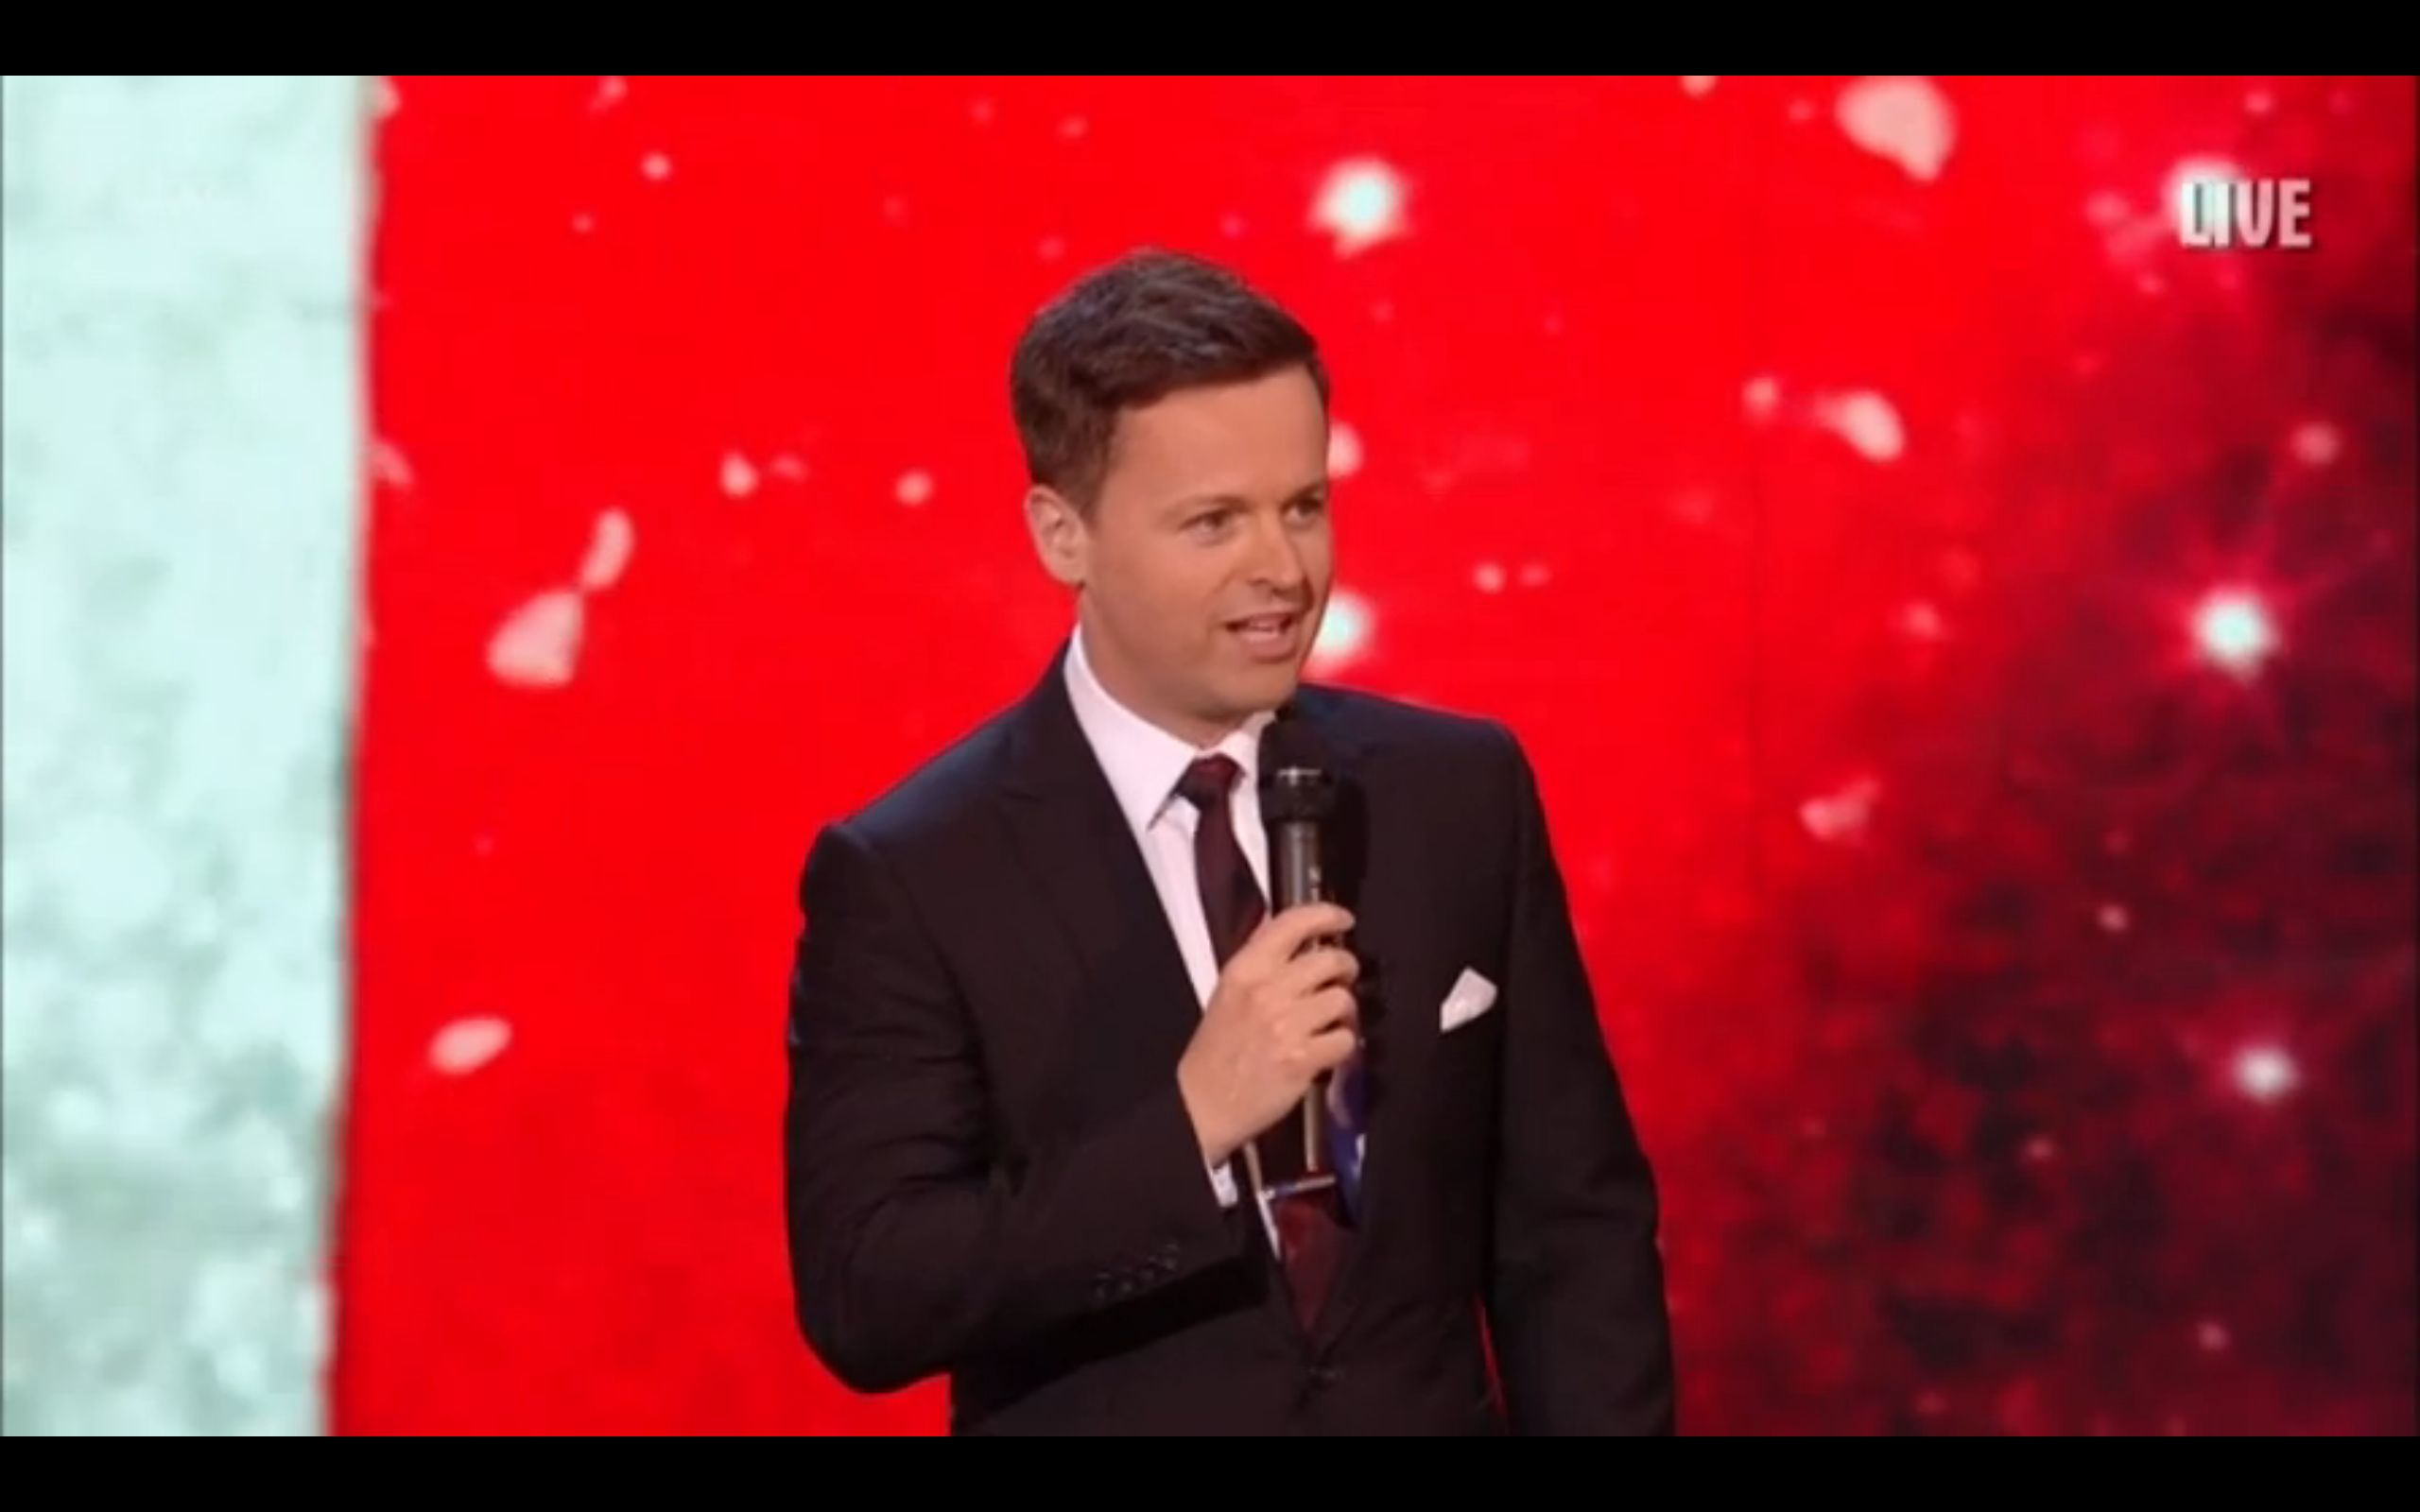 Declan Donnelly Kicks Off Second 'BGT' Live Show With Joke About Previous Night's Technical